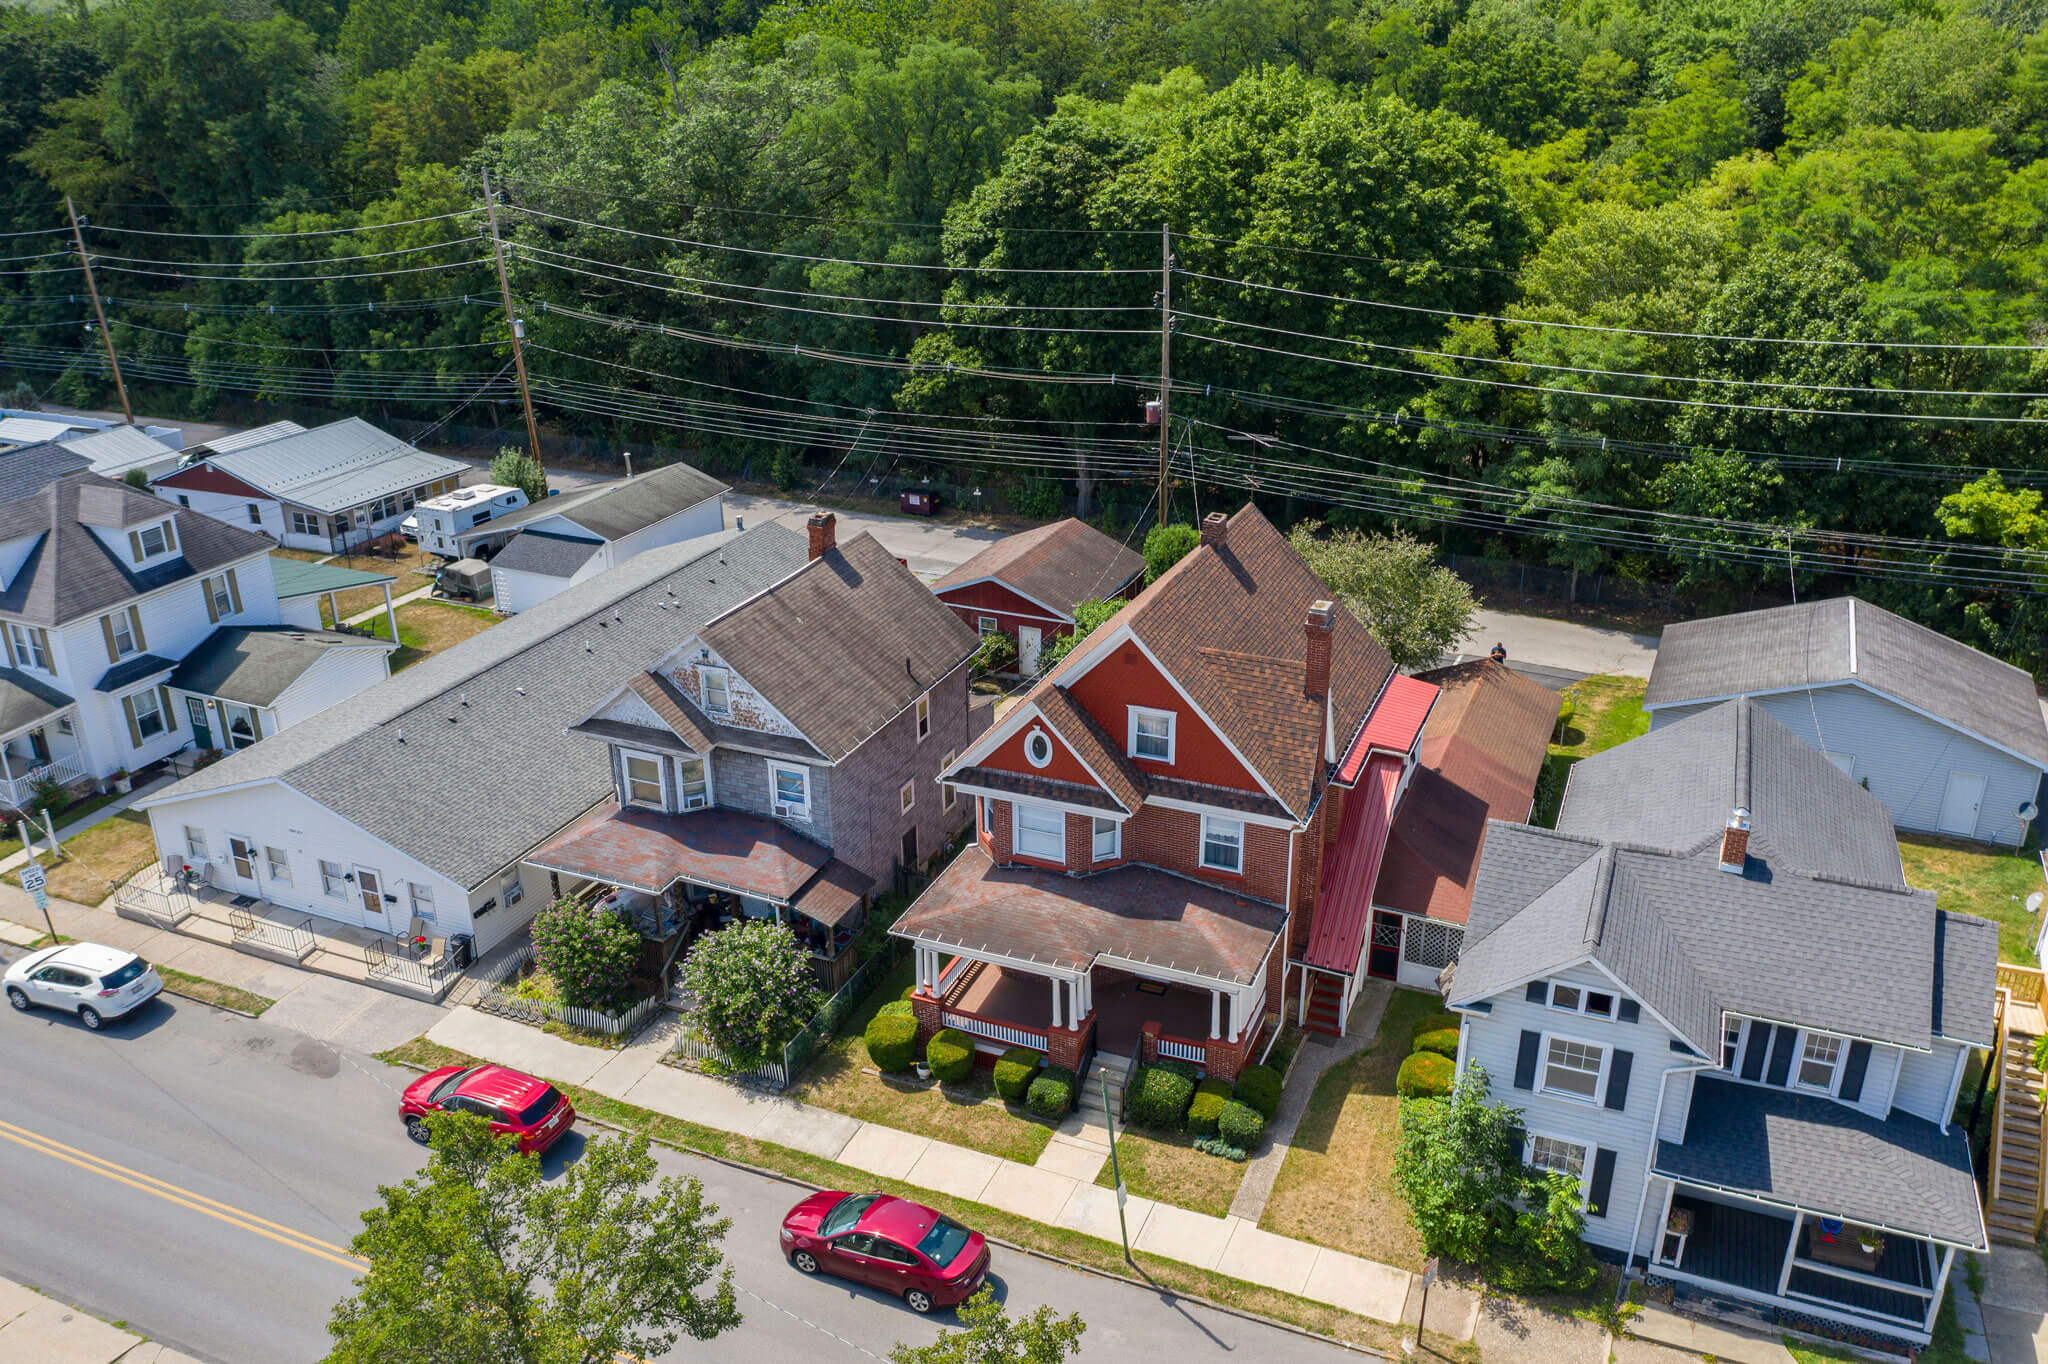 WEBSITE-PHOTO-2---DRONE-RED-CARS-HOUSE